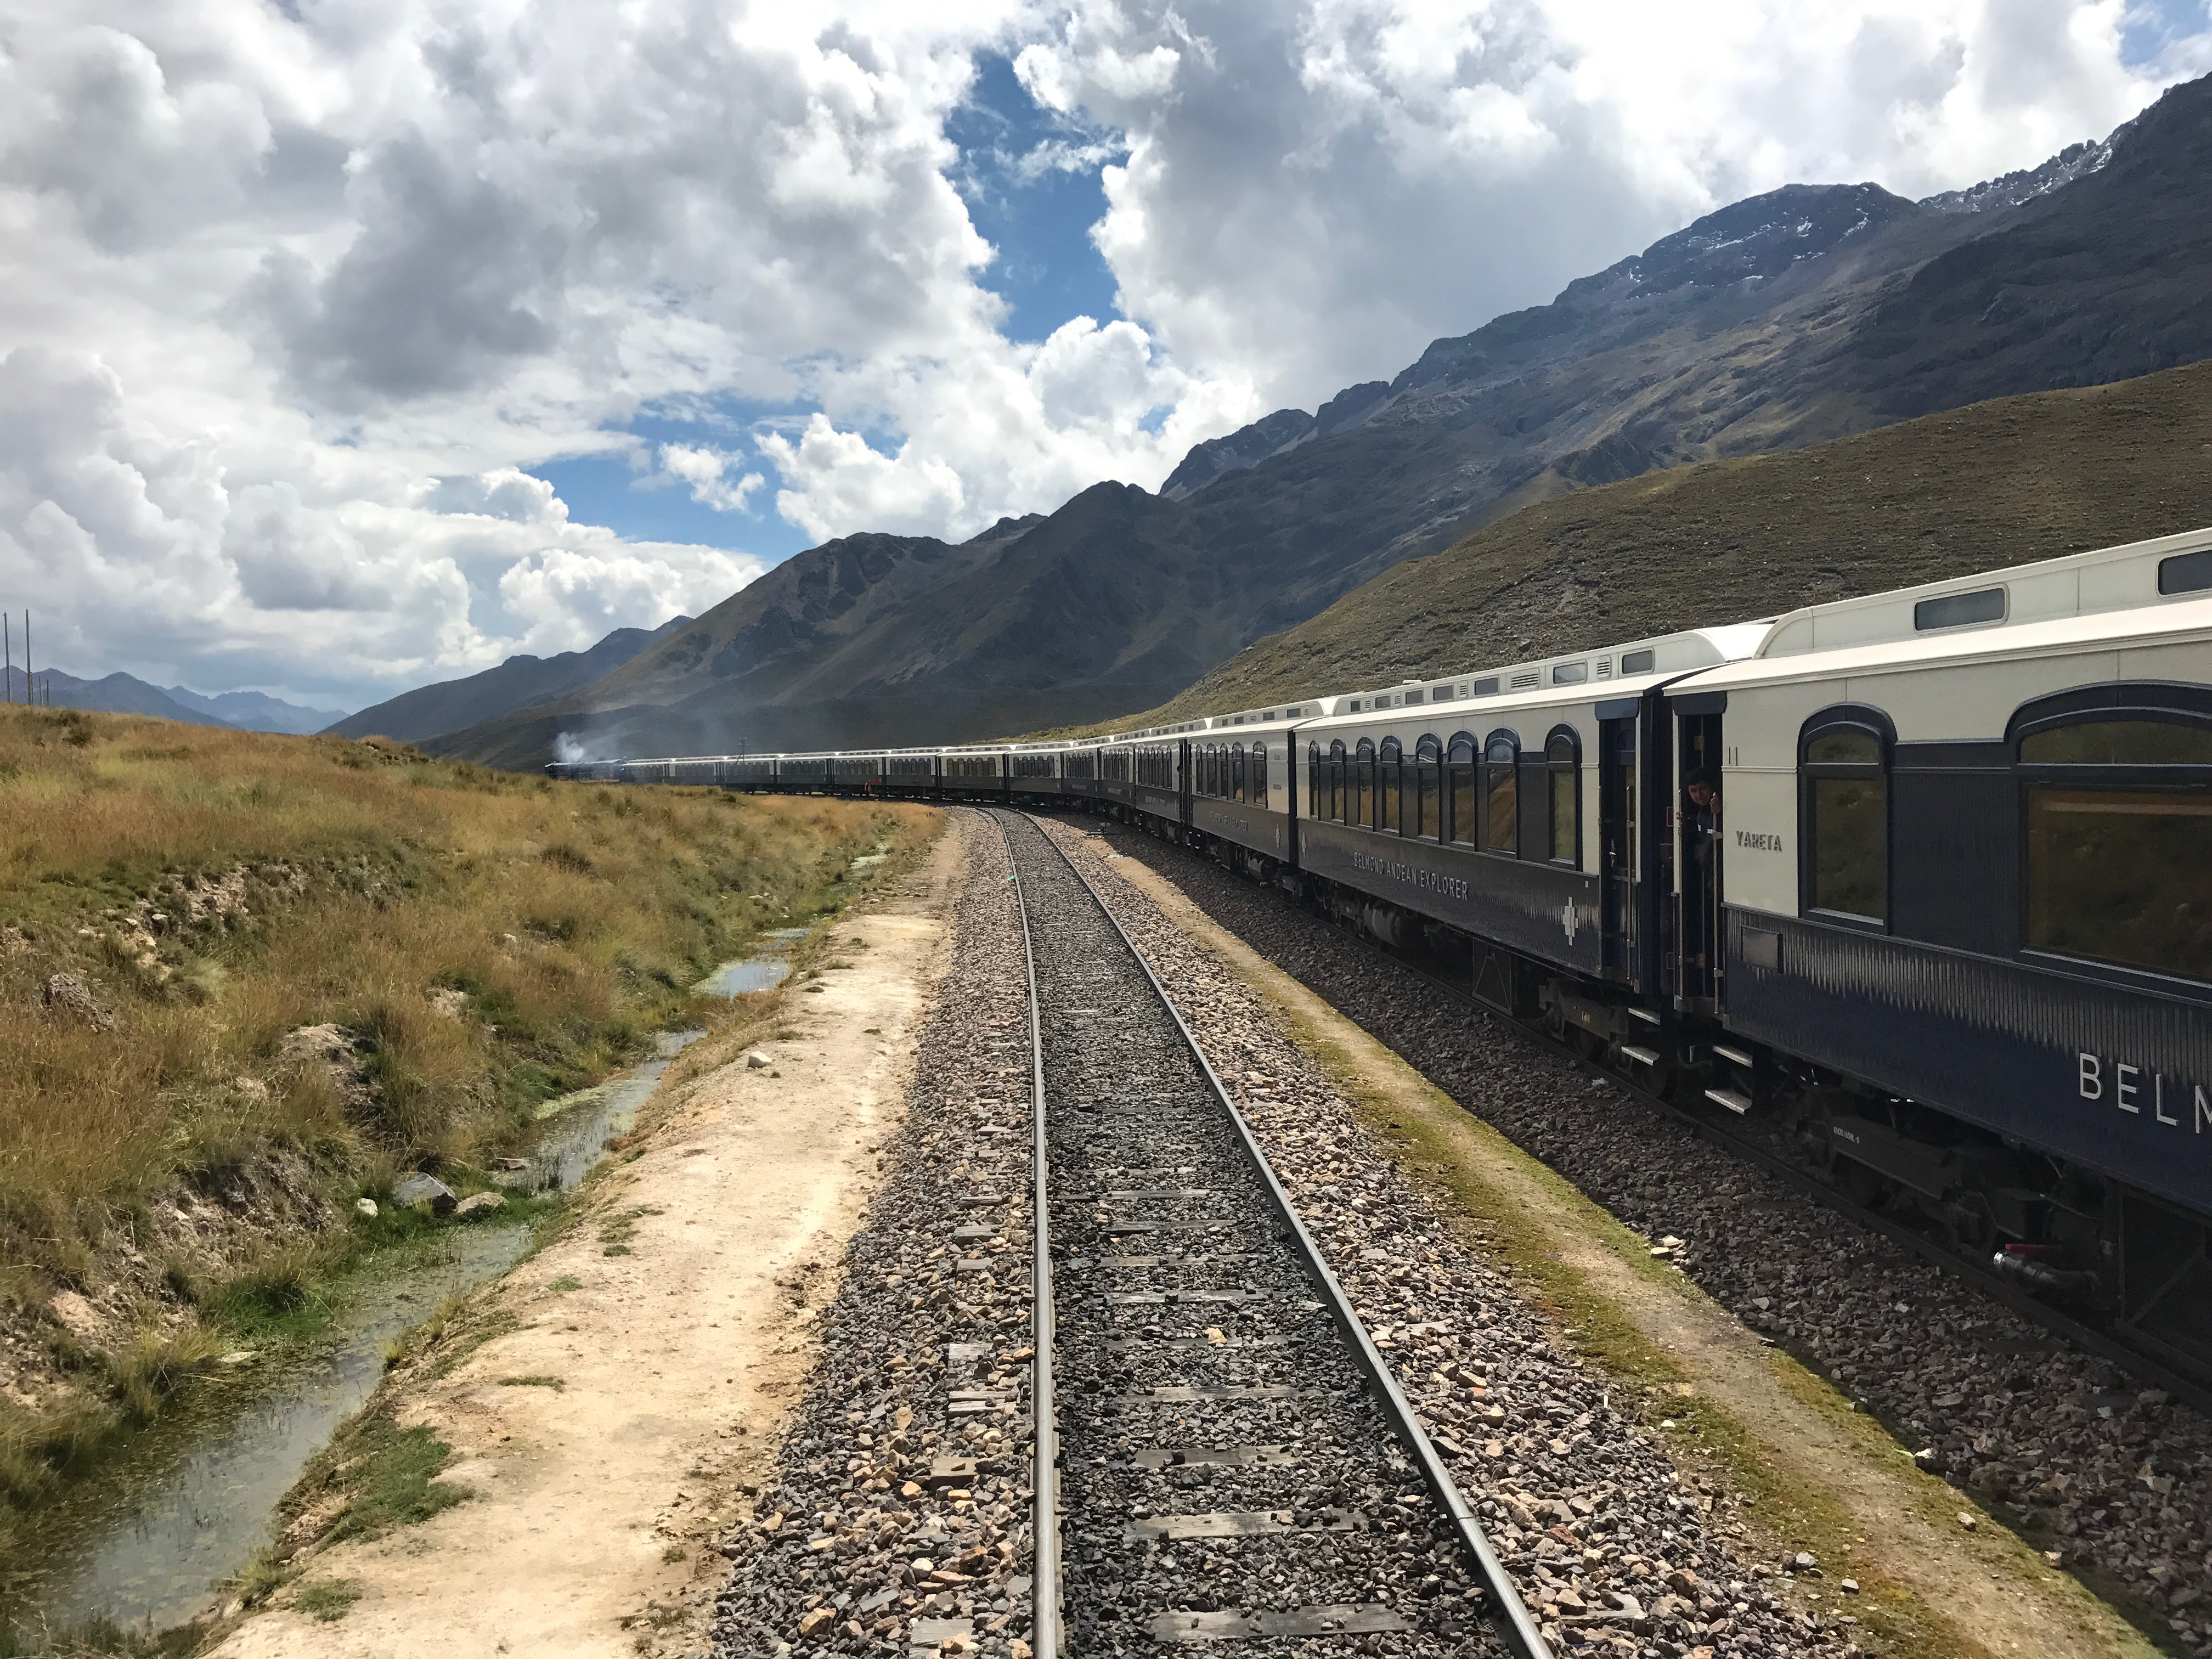 New Belmond Andean Explorer 16 carriage train